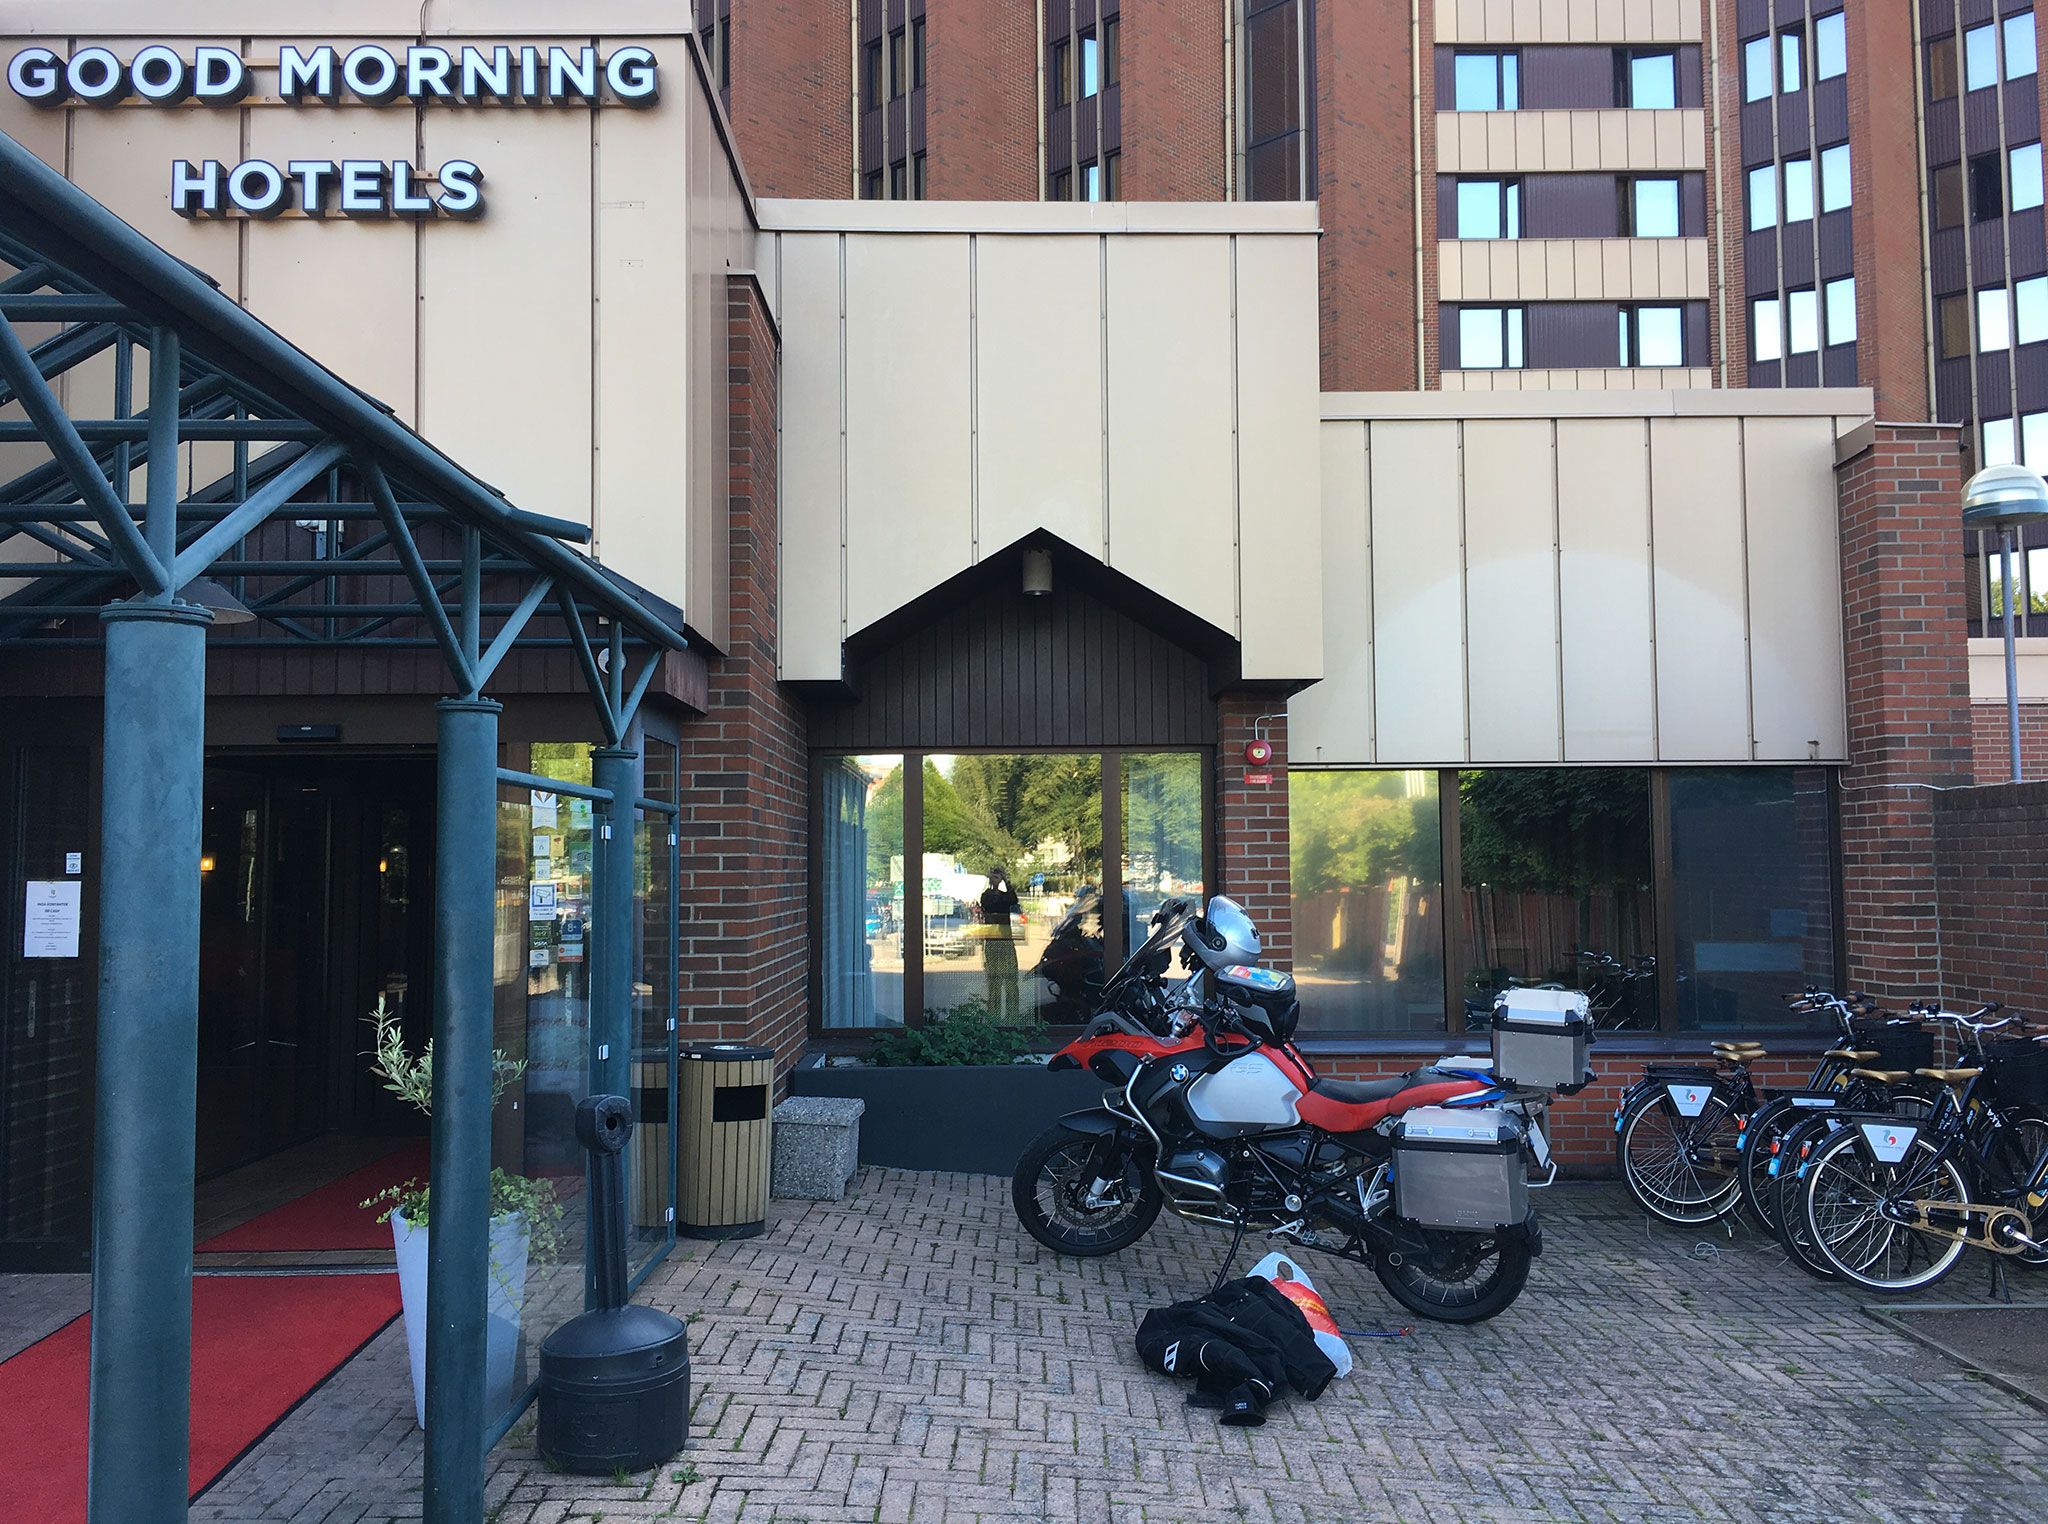 Parking  a motorcycle next to the entrance/lobby wasn't safe enough